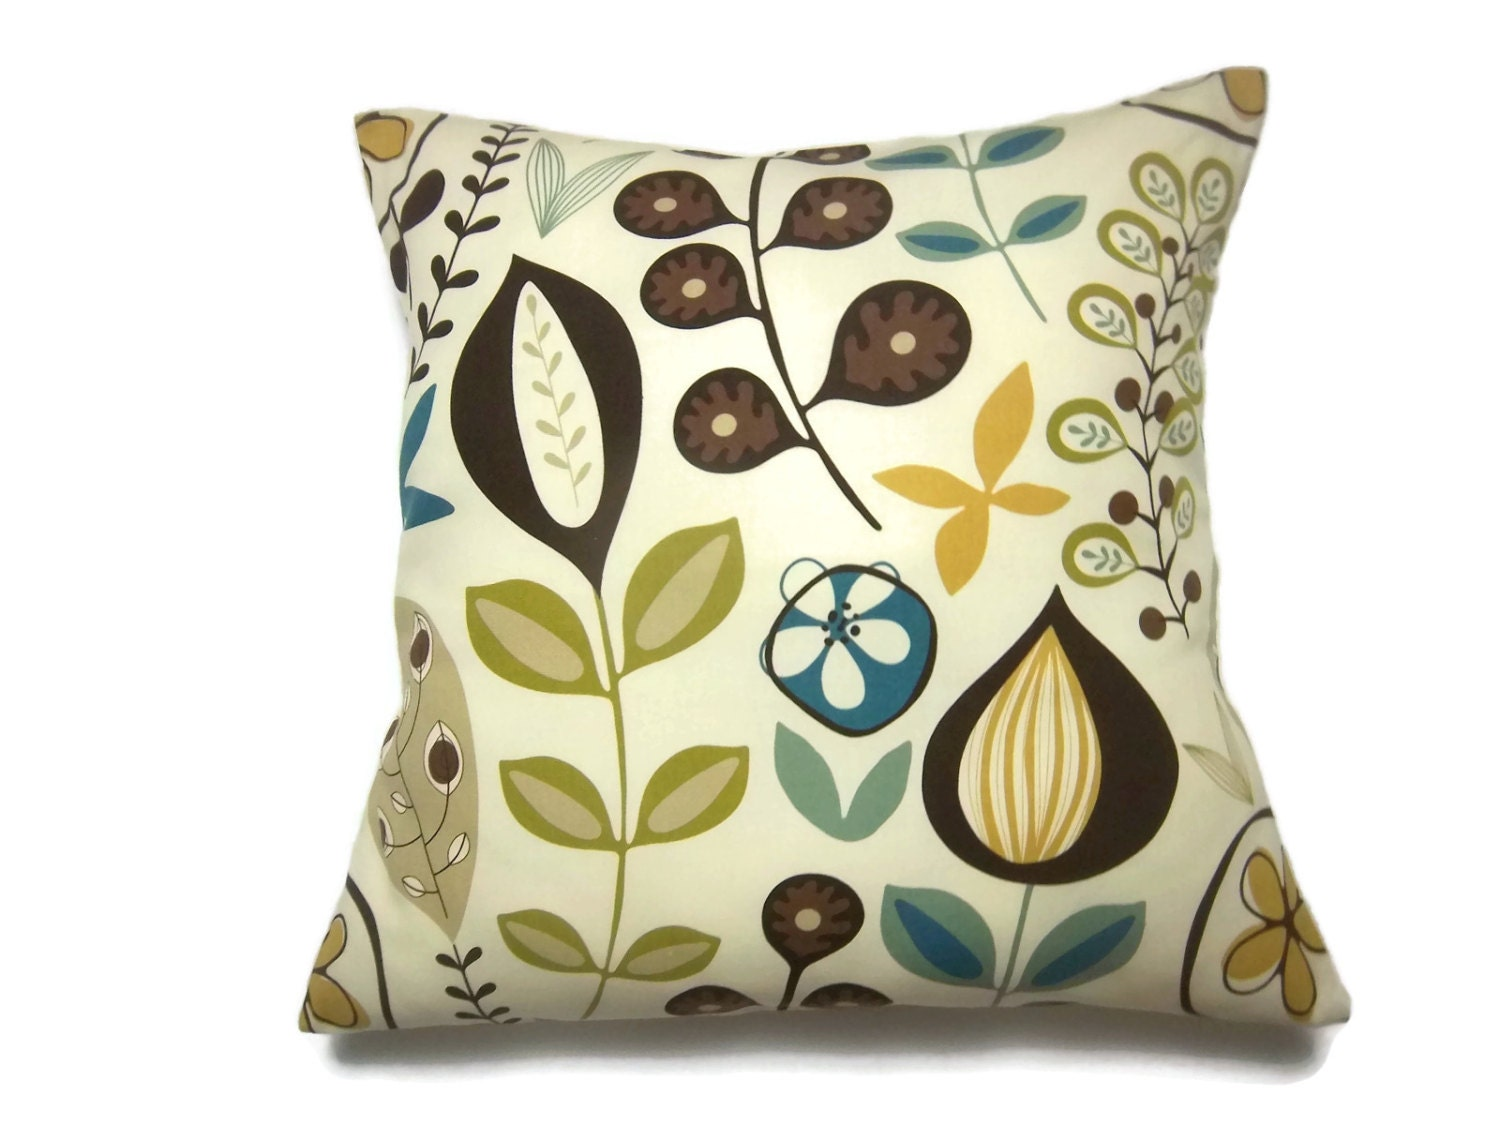 Decorative Pillows Etsy : Decorative Pillow Cover Modern Floral Yellow Gold Brown Cream